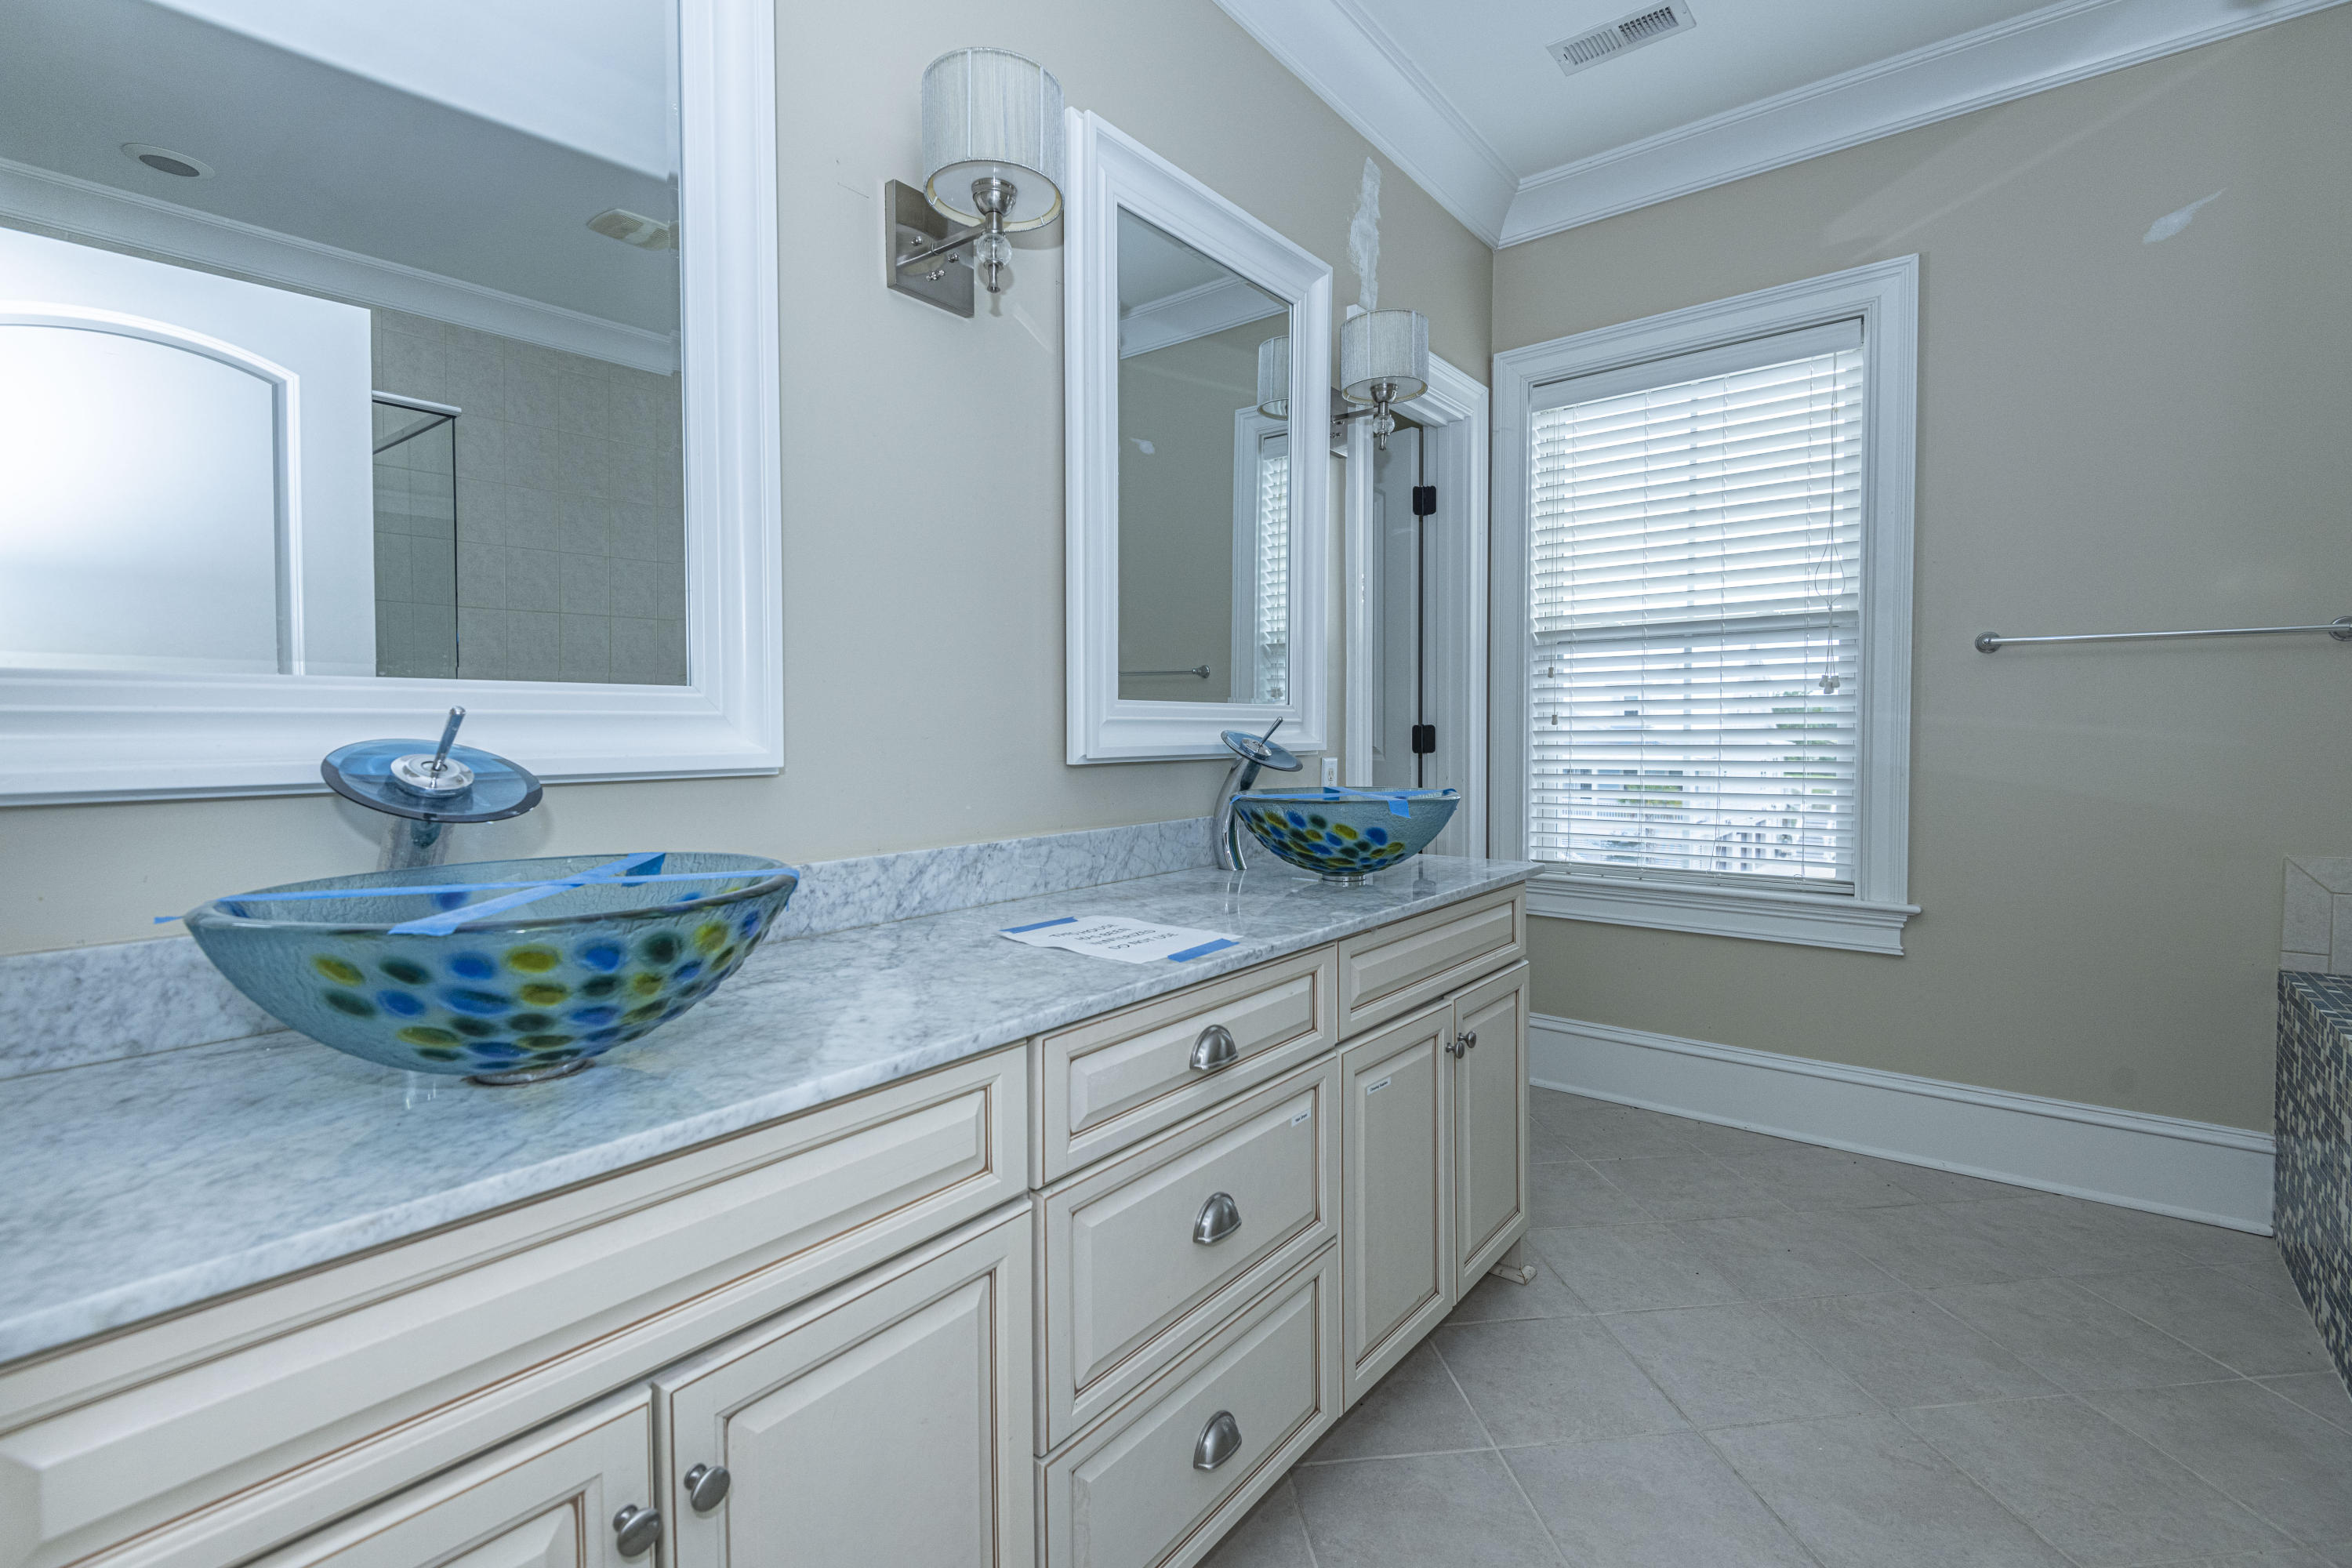 Rivertowne Country Club Homes For Sale - 1593 Rivertowne Country Club, Mount Pleasant, SC - 28